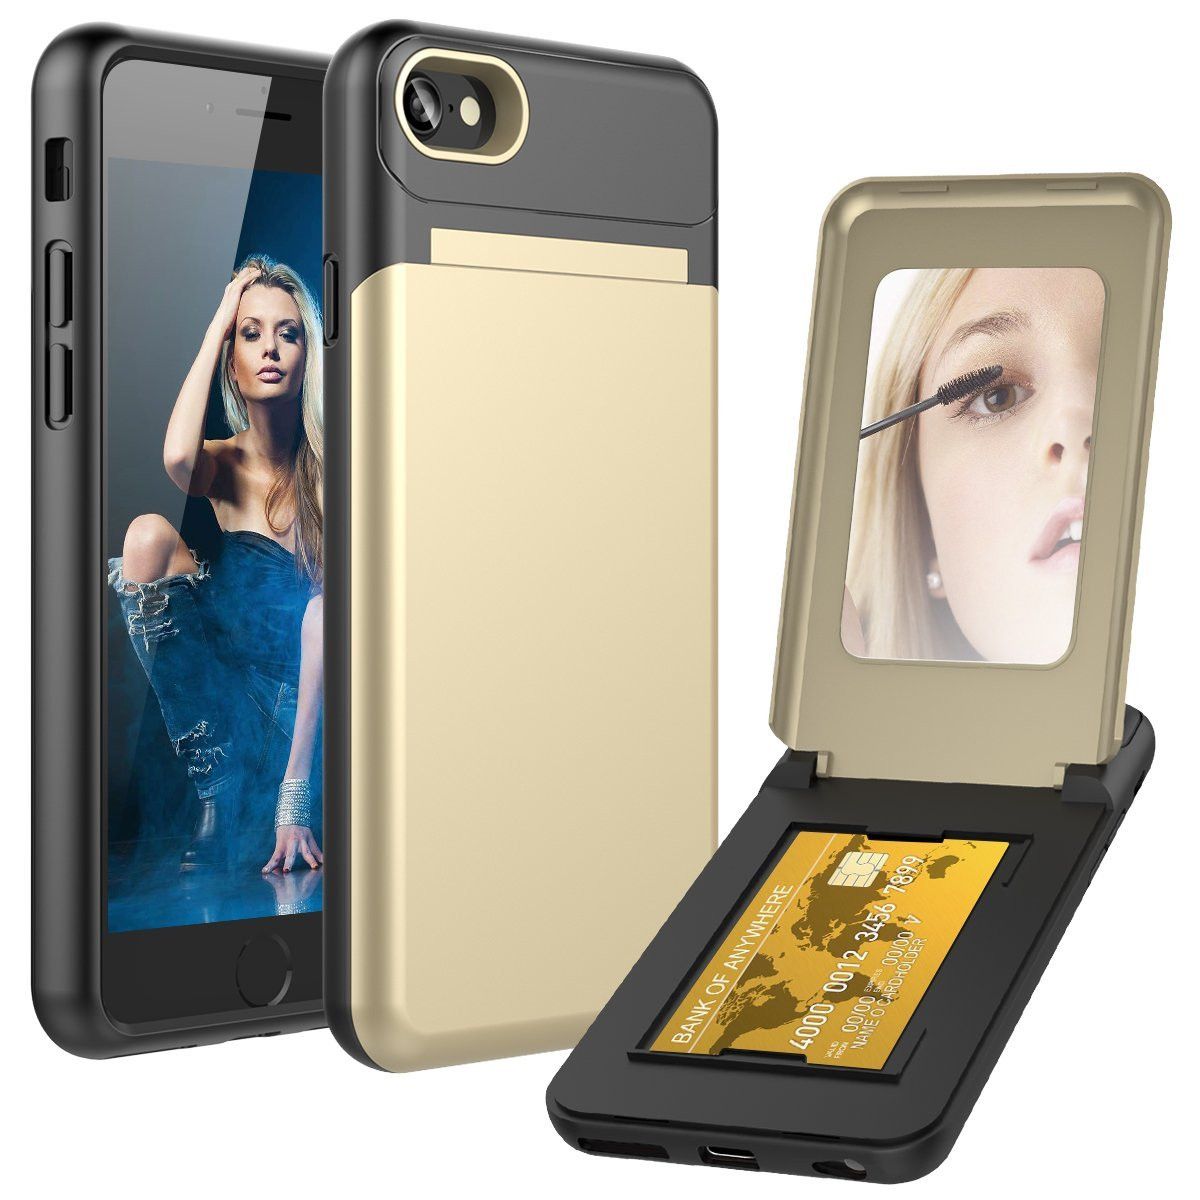 Apple iPhone 6s -  Hard Phone Case with Hidden Mirror and Card Holder Compartment, Gold/Black